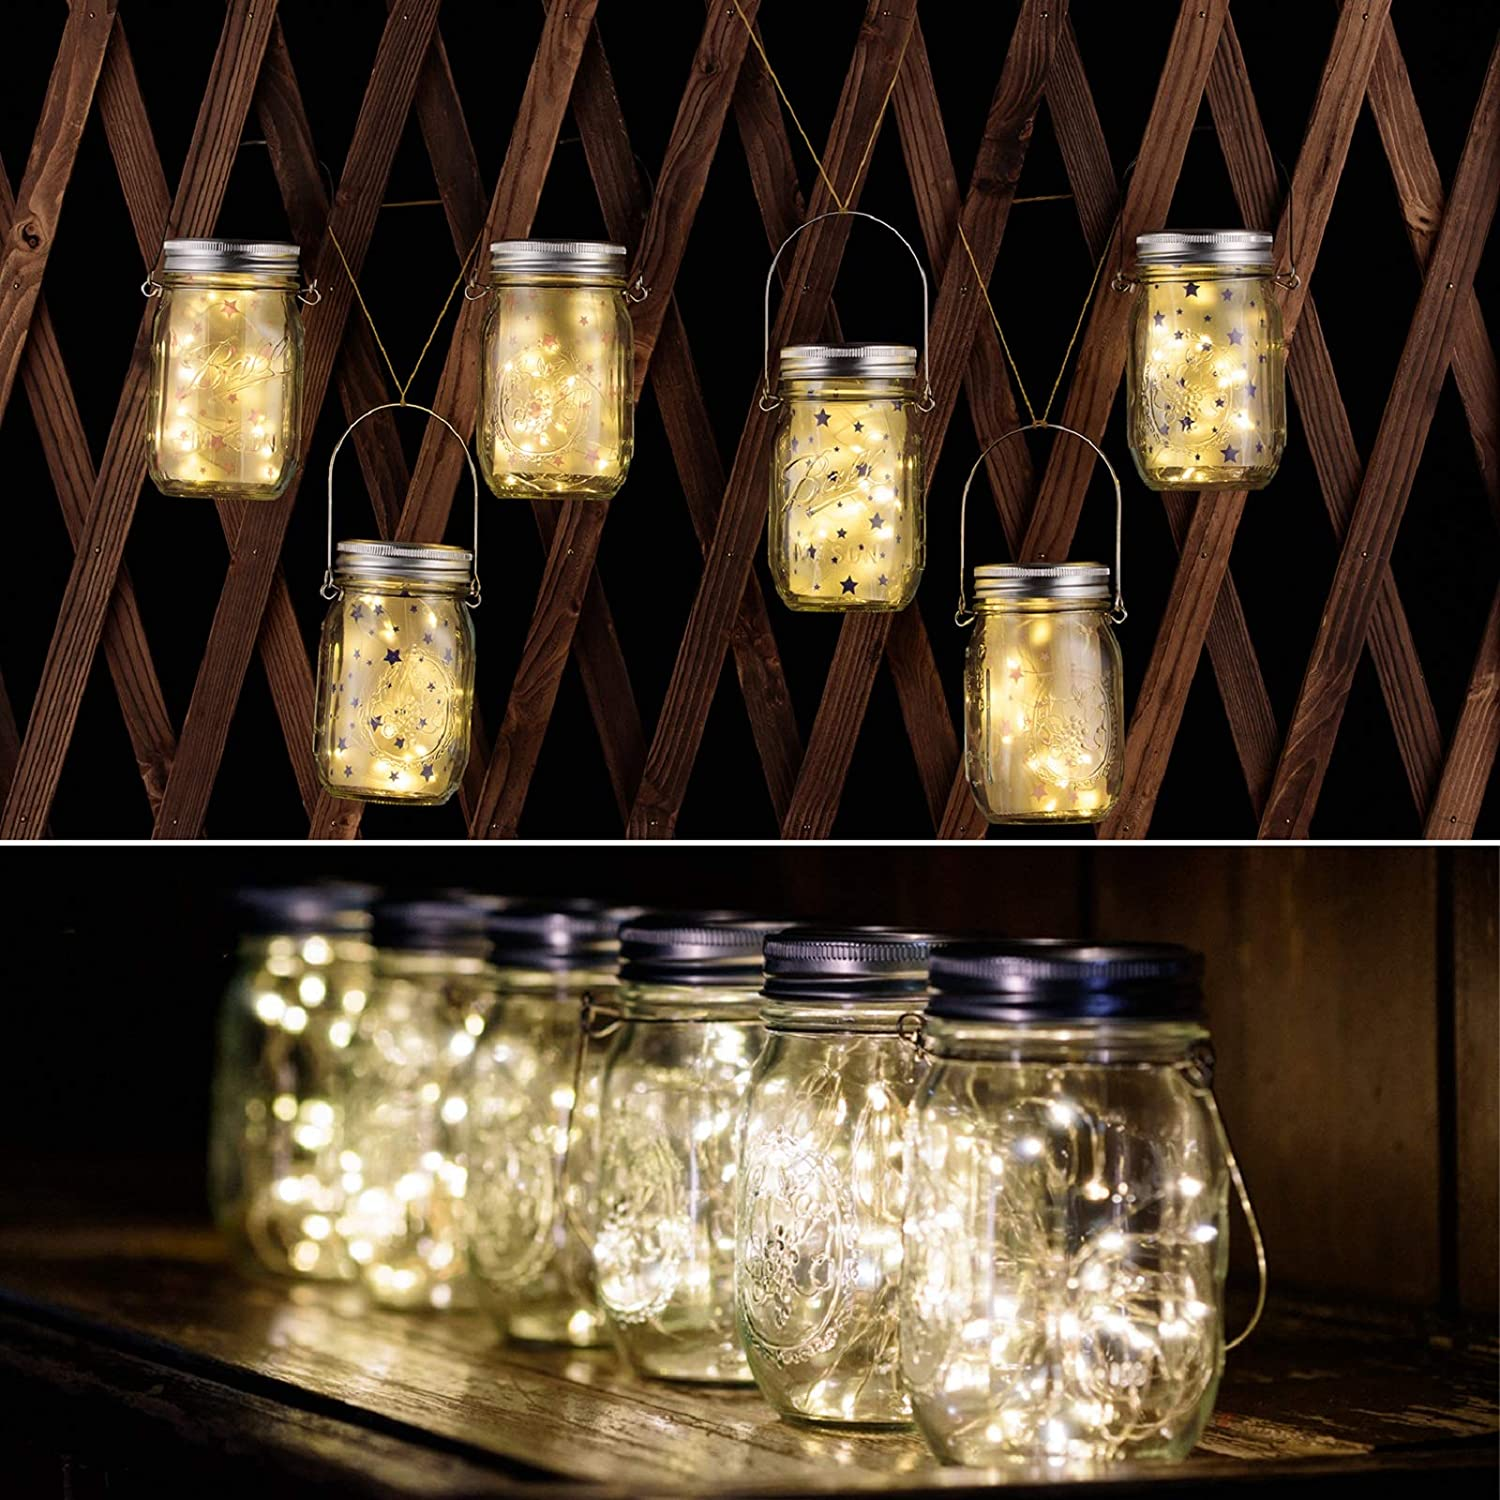 ANGMLN YITING Solar Hanging Mason Jar Lights 6 Pack 30 LED Fairy Lights Solar Laterns Outdoor Hanging Table Lights 6 Hangers and Jars Included Decor for Patio Garden Yard Fence Pathway Gazebo